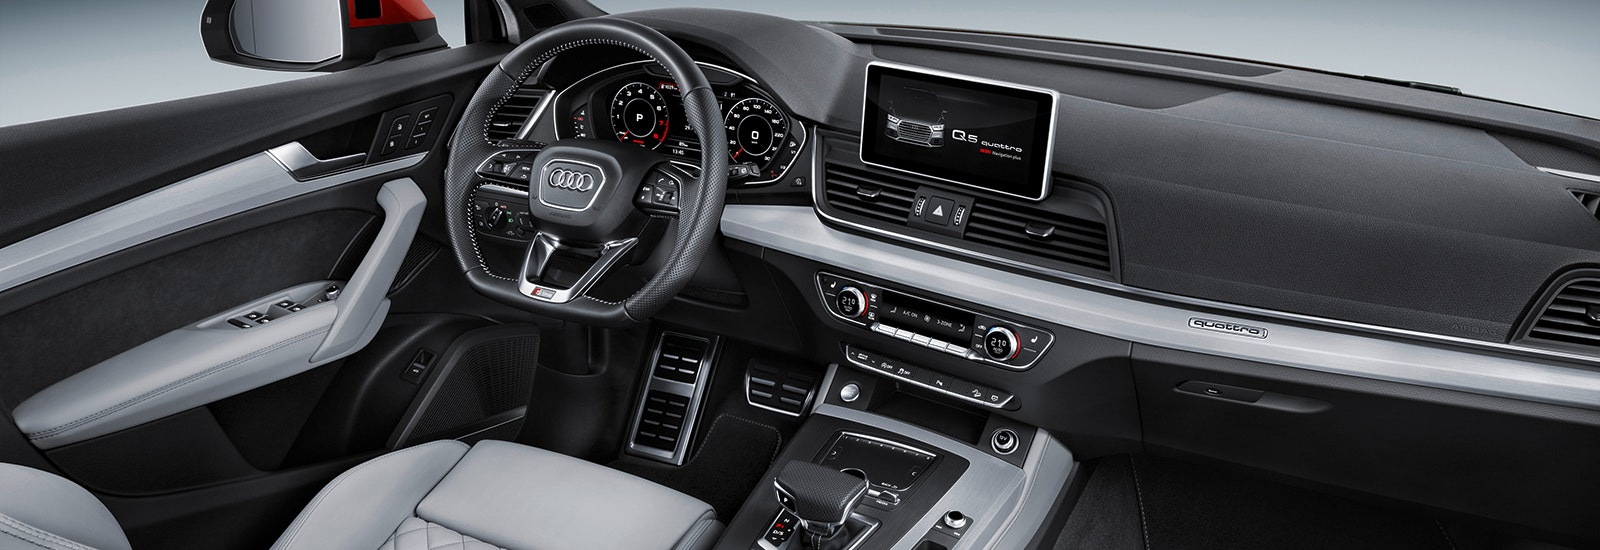 Audi q5 finance deals uk